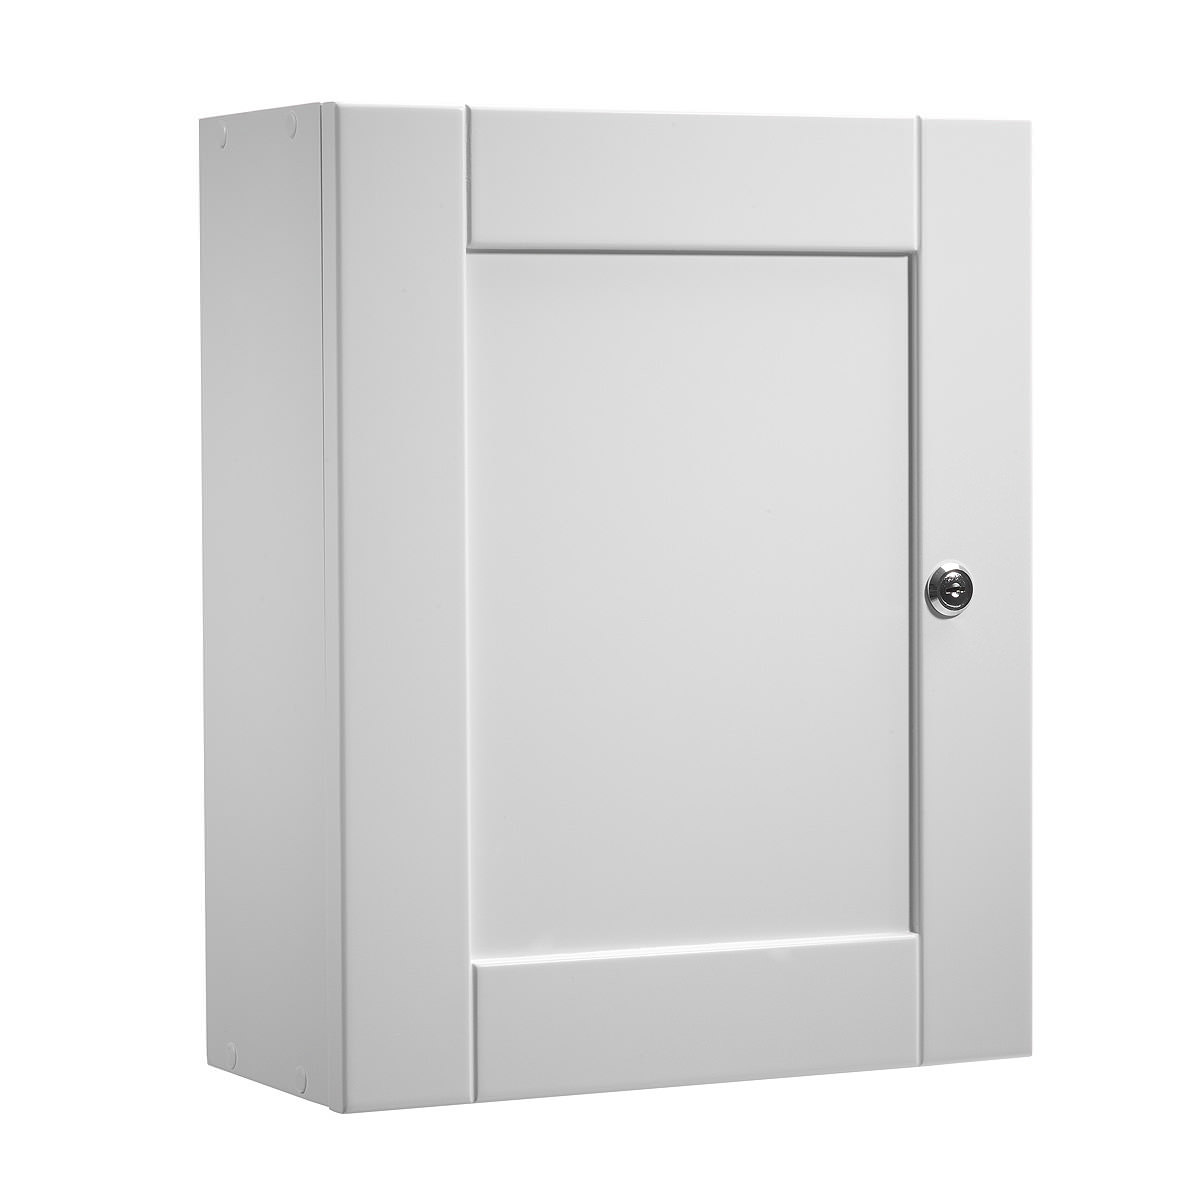 Roper Rhodes Medicab Lockable Single Door Wall Cabinet